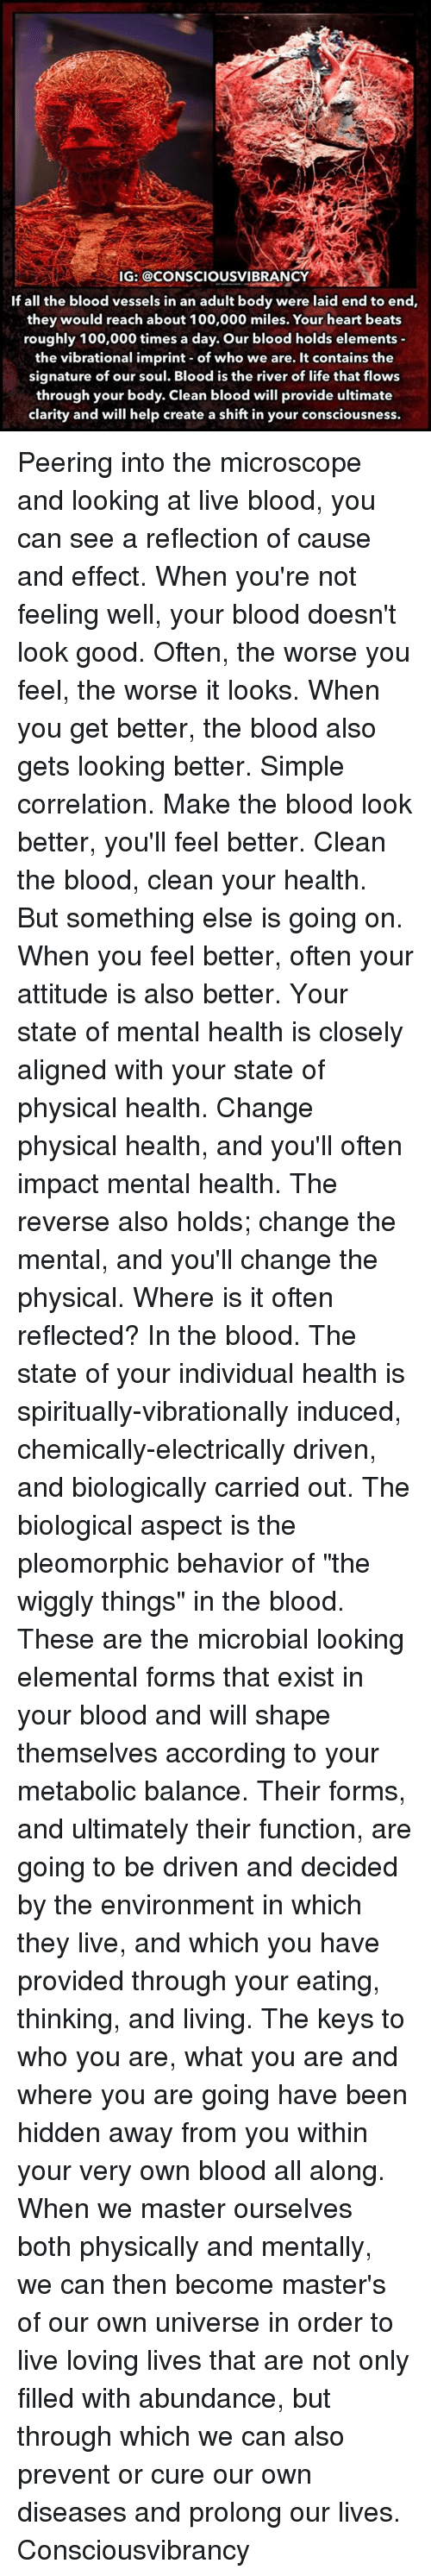 "Anaconda, Life, and Memes: IG: @CONSCIOUSVIBRANCY  If all the blood vessels in an adult body were laid end to end,  they would reach about 100,000 miles. Your heart beats  roughly 100,000 times a day. Our blood holds elements  the vibrational imprint of who we are. It contains the  signature of our soul. Blood is the river of life that flows  through your body. Clean blood will provide ultimate  clarity and will help create a shift in your consciousness. Peering into the microscope and looking at live blood, you can see a reflection of cause and effect. When you're not feeling well, your blood doesn't look good. Often, the worse you feel, the worse it looks. When you get better, the blood also gets looking better. Simple correlation. Make the blood look better, you'll feel better. Clean the blood, clean your health. But something else is going on. When you feel better, often your attitude is also better. Your state of mental health is closely aligned with your state of physical health. Change physical health, and you'll often impact mental health. The reverse also holds; change the mental, and you'll change the physical. Where is it often reflected? In the blood. The state of your individual health is spiritually-vibrationally induced, chemically-electrically driven, and biologically carried out. The biological aspect is the pleomorphic behavior of ""the wiggly things"" in the blood. These are the microbial looking elemental forms that exist in your blood and will shape themselves according to your metabolic balance. Their forms, and ultimately their function, are going to be driven and decided by the environment in which they live, and which you have provided through your eating, thinking, and living. The keys to who you are, what you are and where you are going have been hidden away from you within your very own blood all along. When we master ourselves both physically and mentally, we can then become master's of our own universe in order to live loving lives that are not only filled with abundance, but through which we can also prevent or cure our own diseases and prolong our lives. Consciousvibrancy"